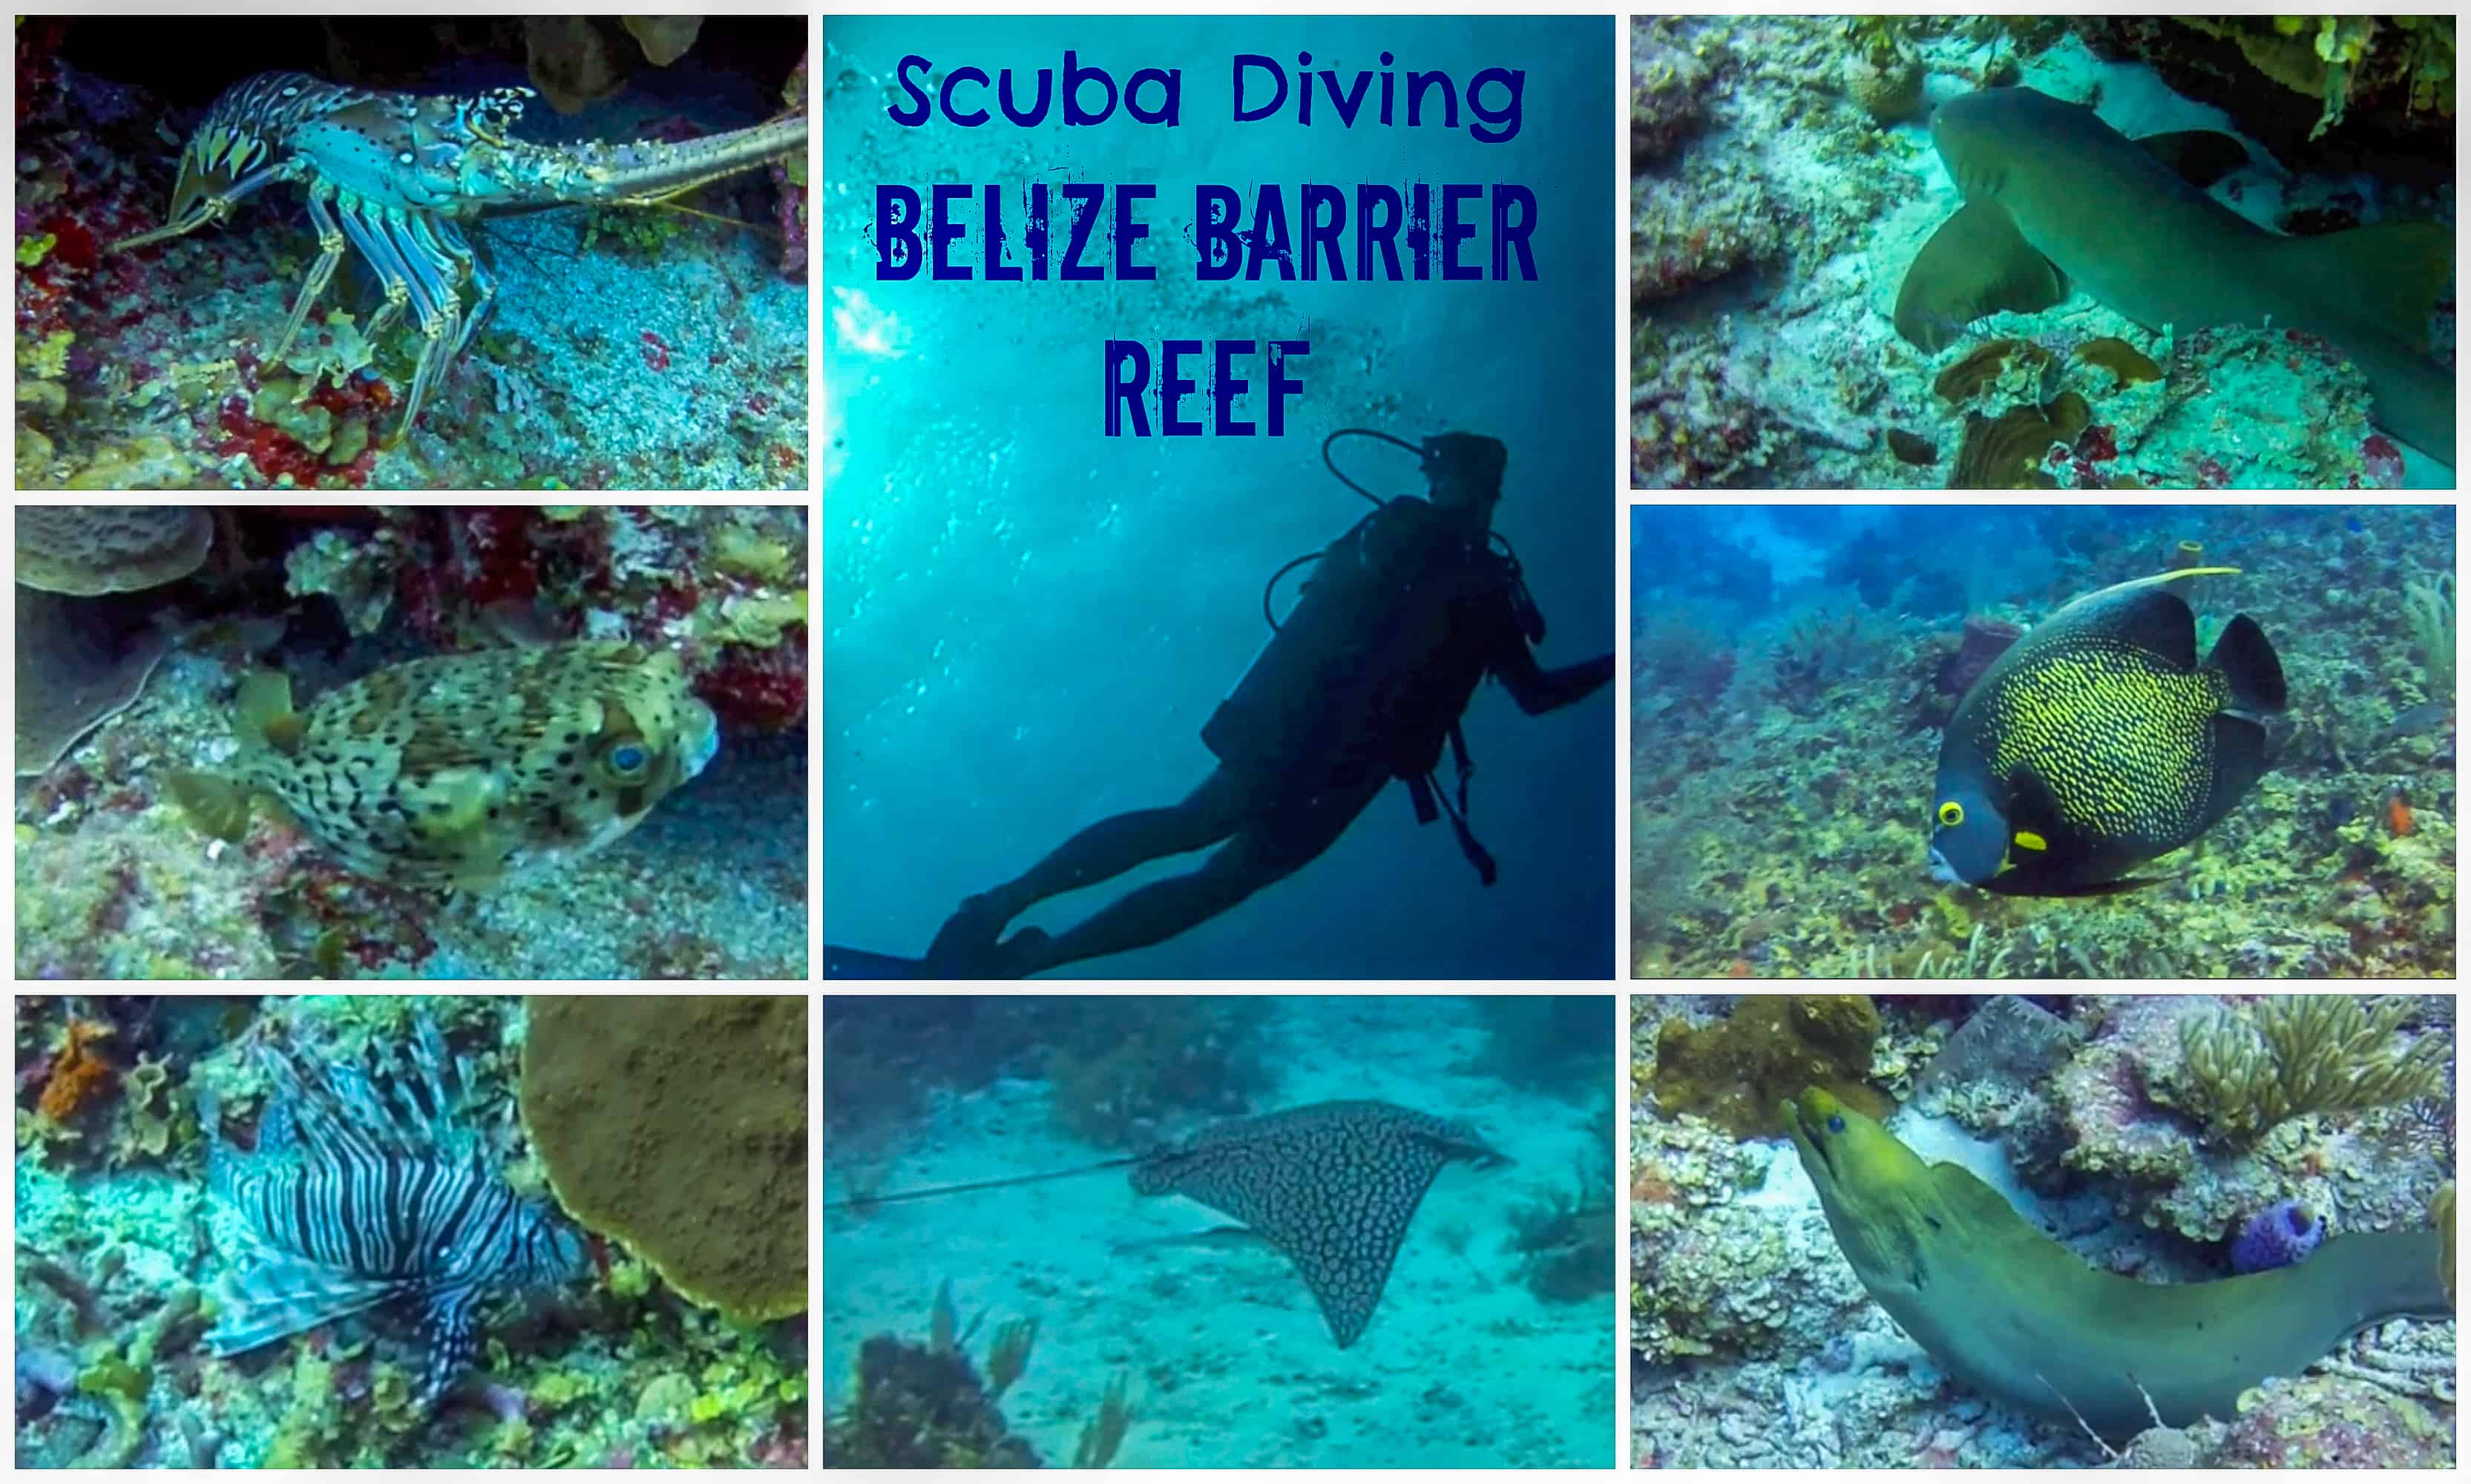 Scuba Diving Belize Barrier Reef